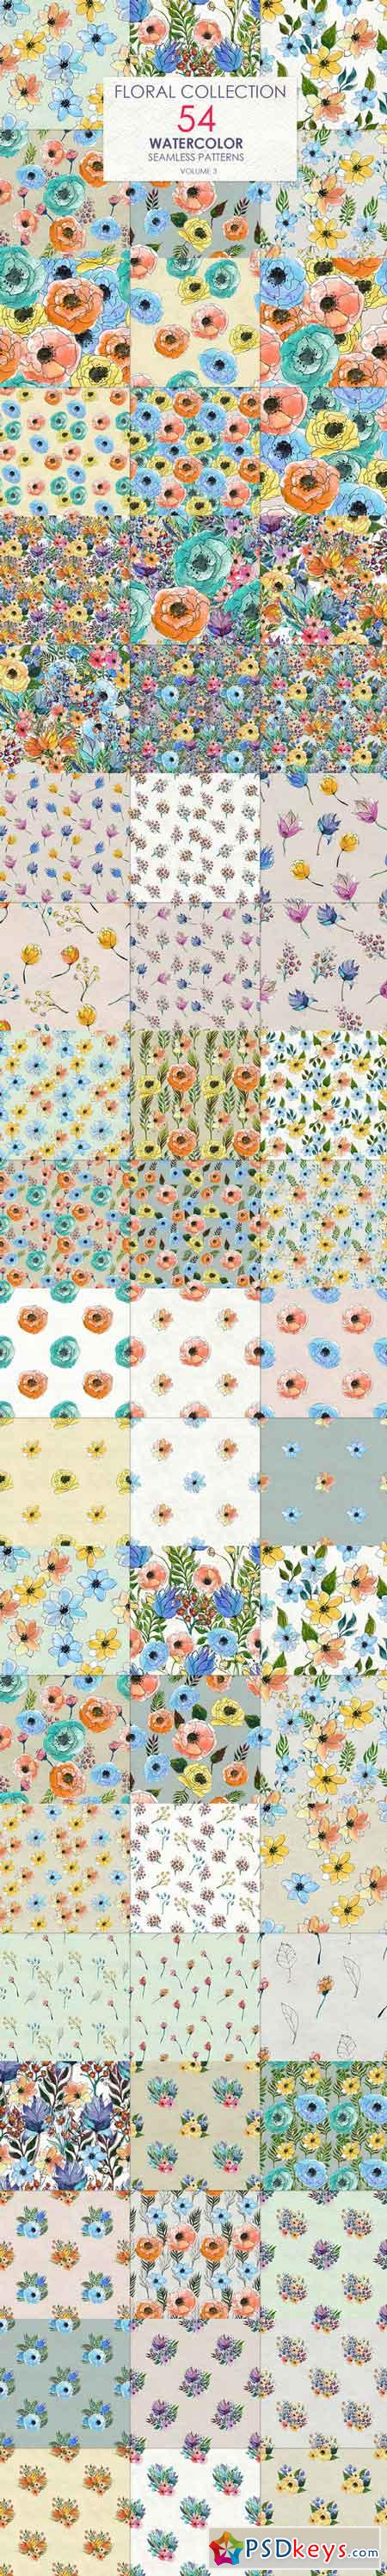 54 floral watercolor patterns 705136